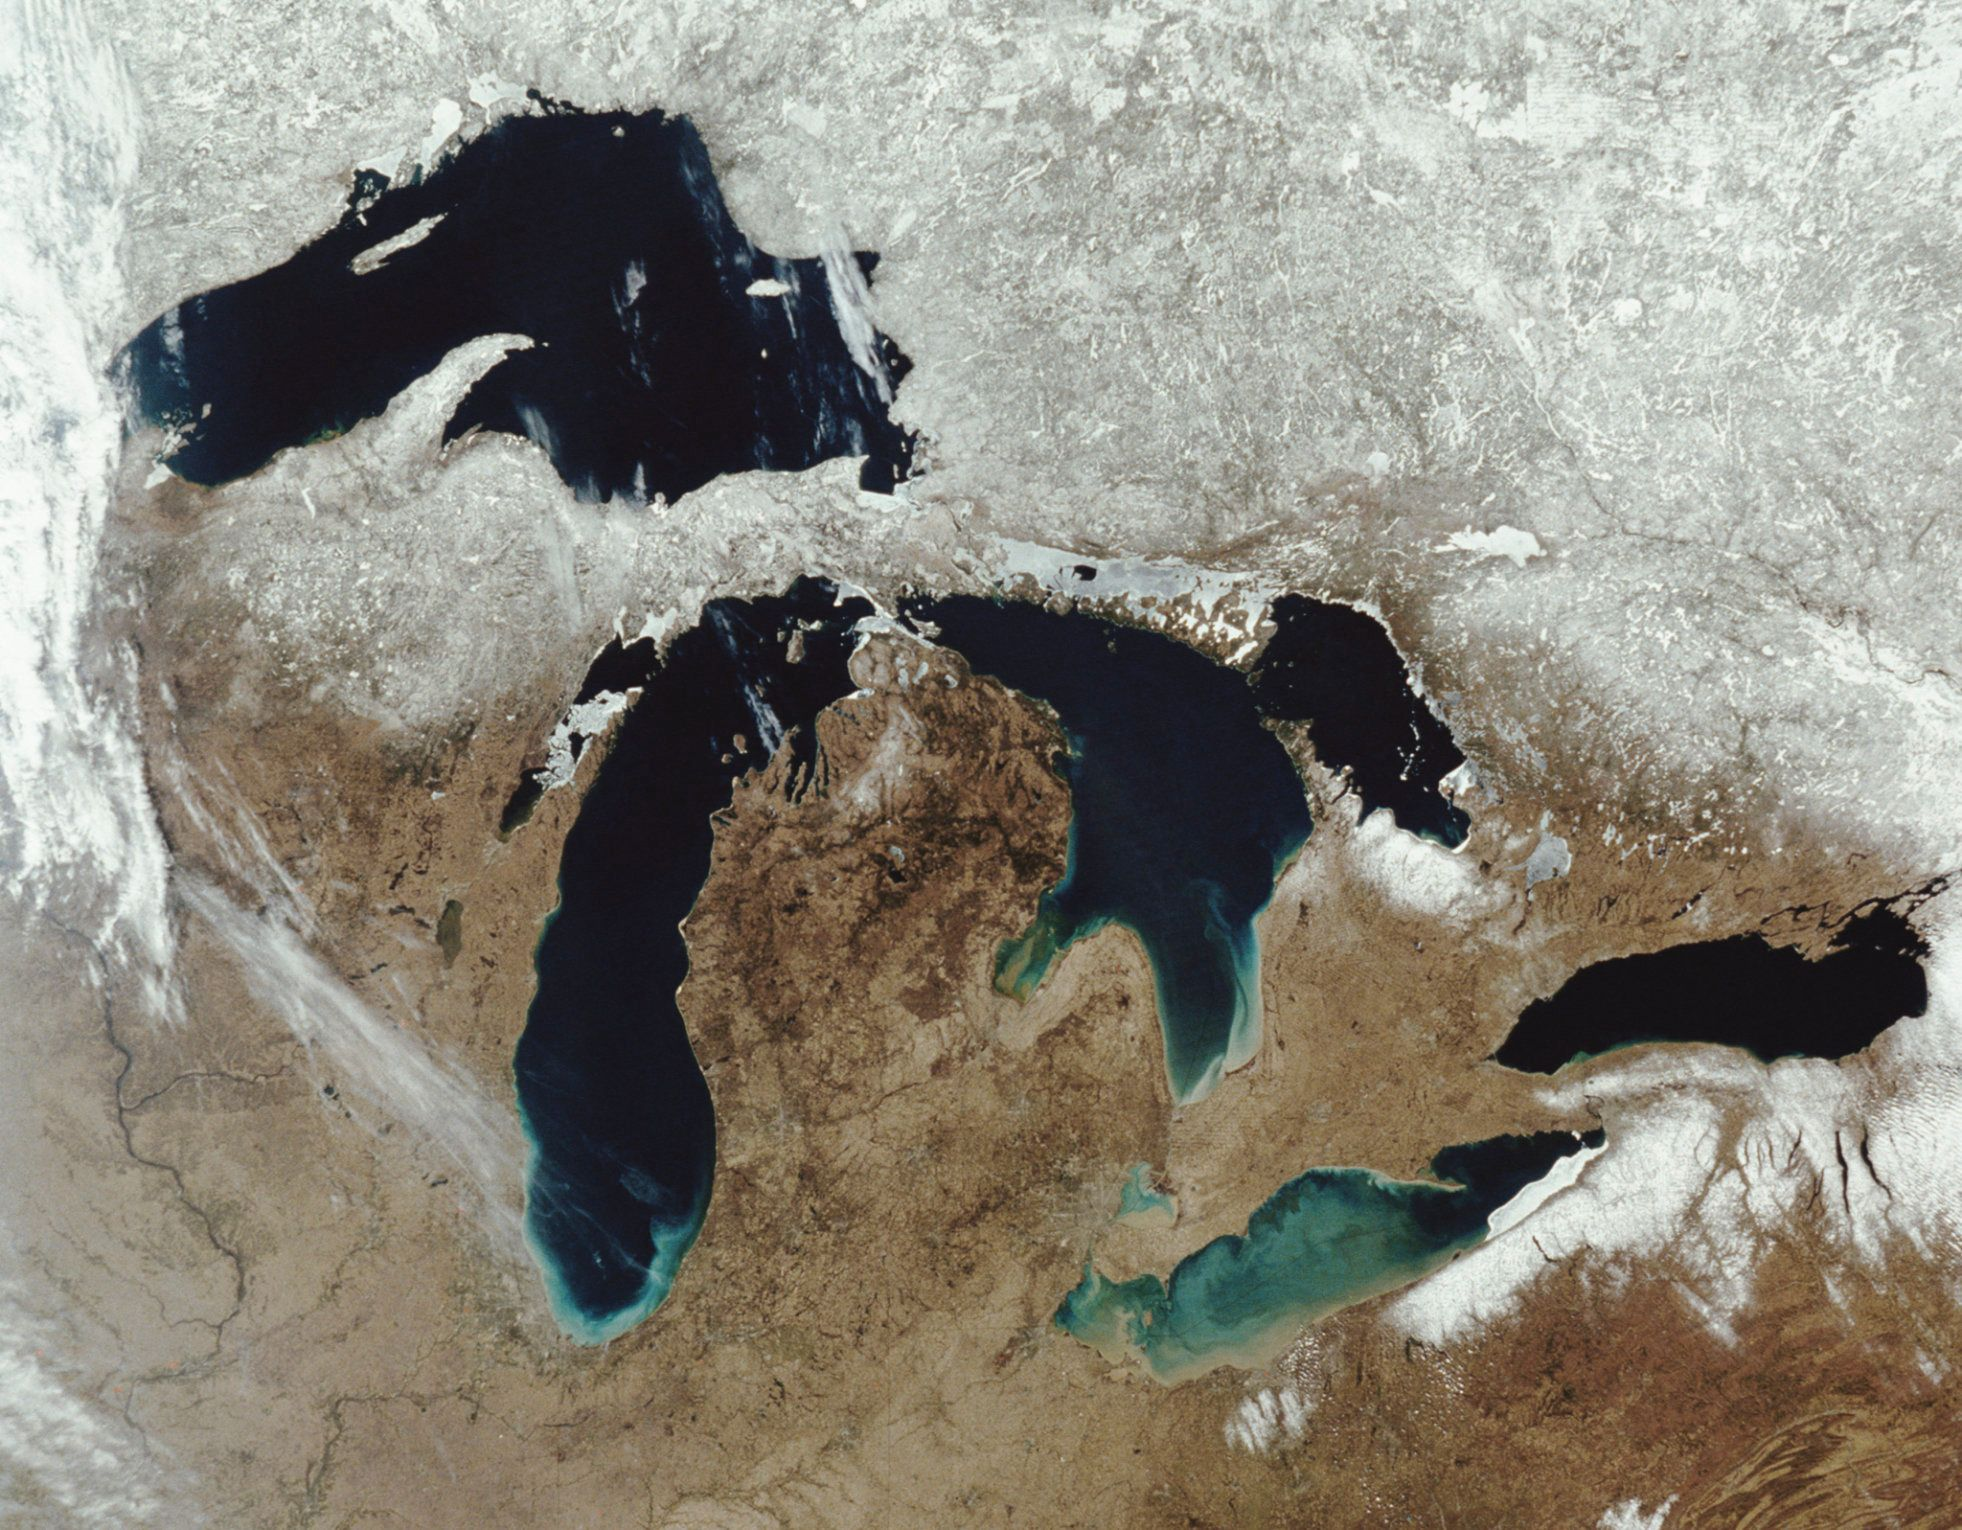 The Five Great Lakes: Lake Superior, Lake Michigan, Lake Huron, Lake Erie and Lake Onatario. Taken by The Moderate Resolution Imaging Spectroradiometer (MODIS) aboard NASA's Aqua satellite, april 5th, 2004.